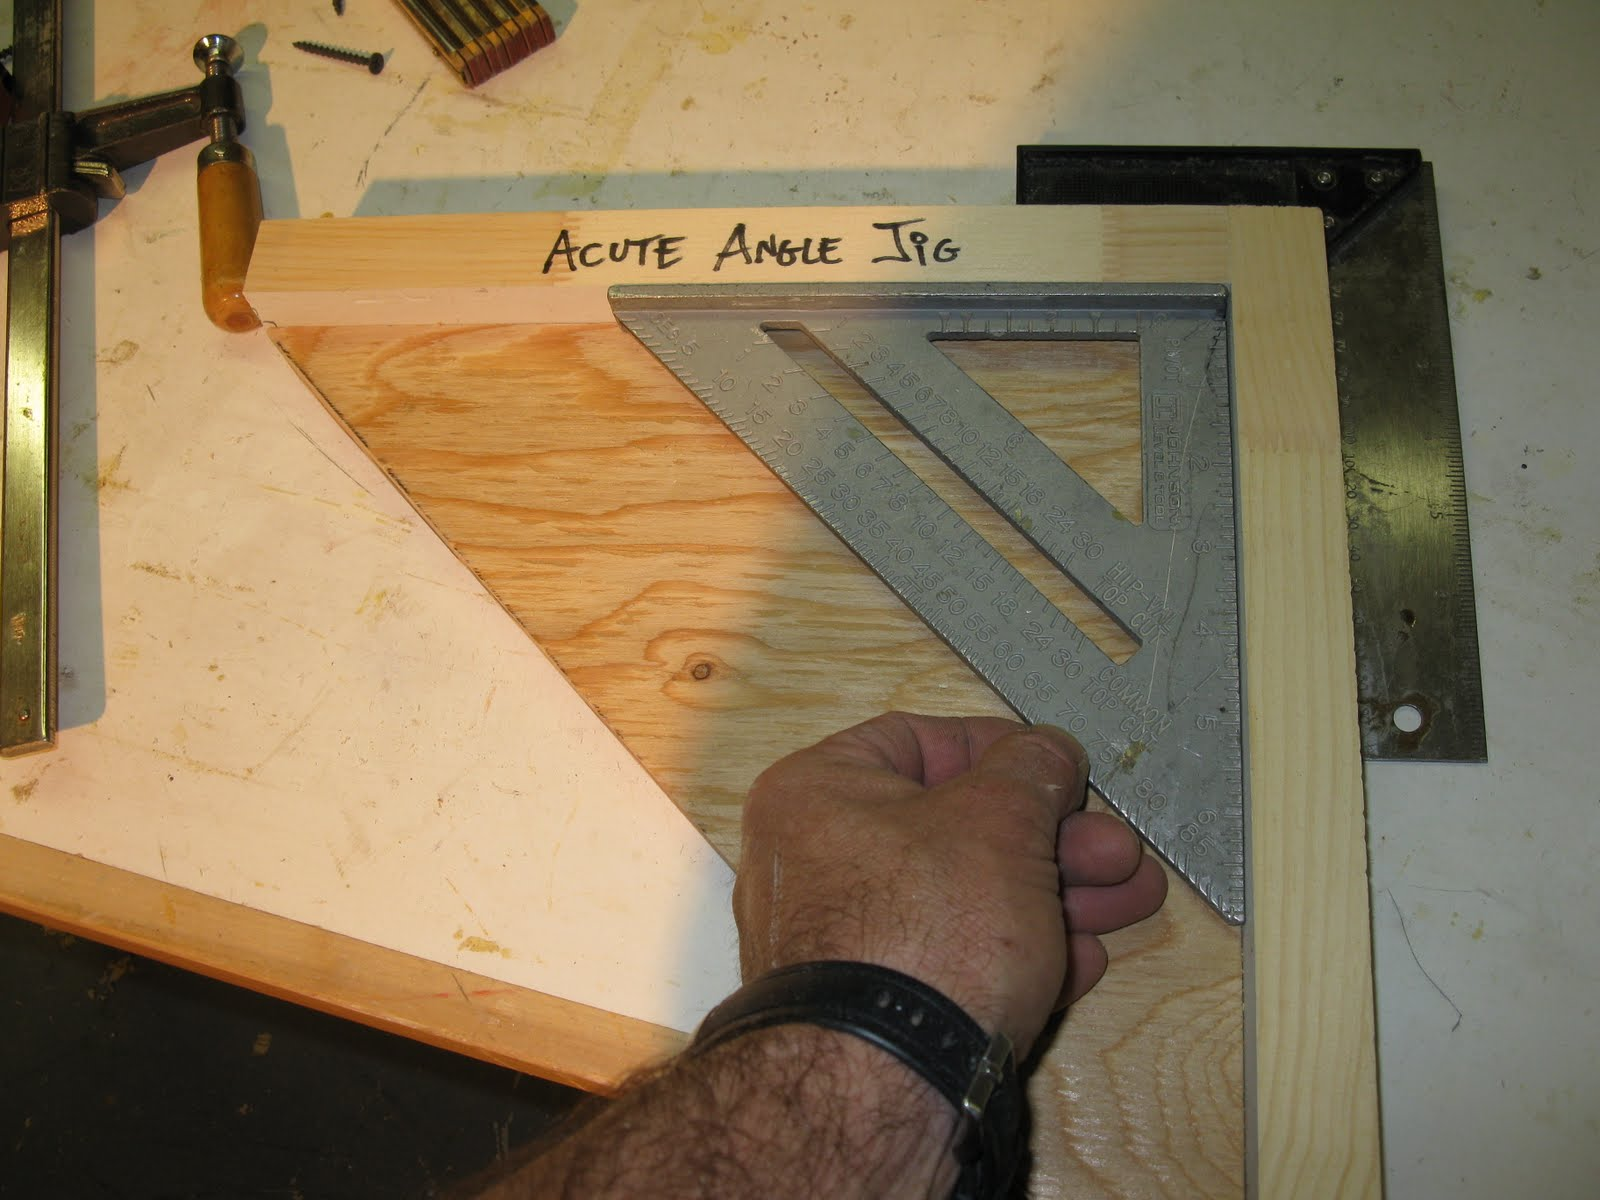 How To Cut Angles Greater Than 45 Degrees On A Miter Saw